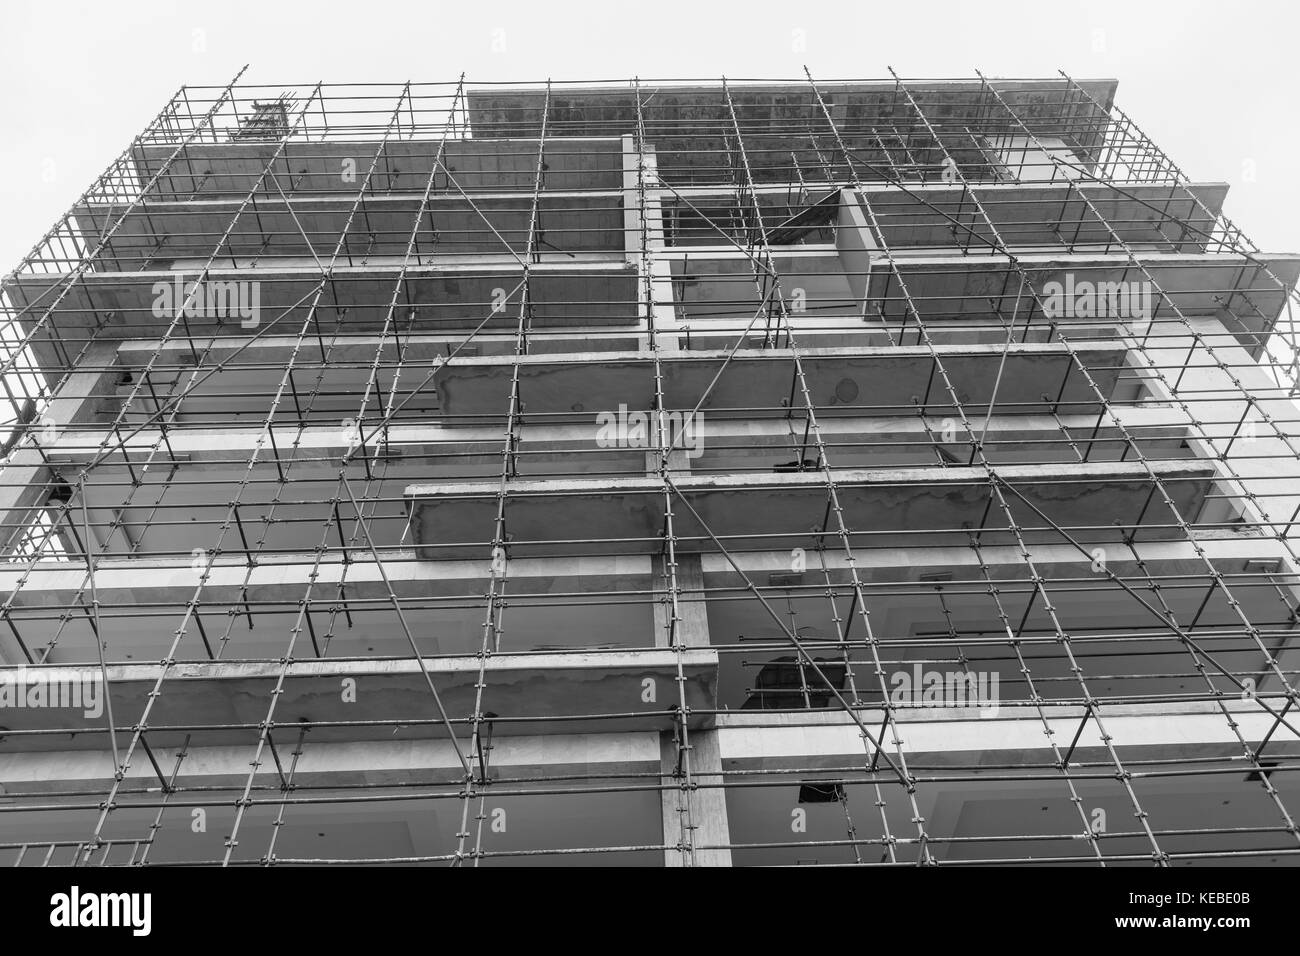 Building construction in progress of floors  apartments raw state of concrete and steel scaffolding upward black - Stock Image